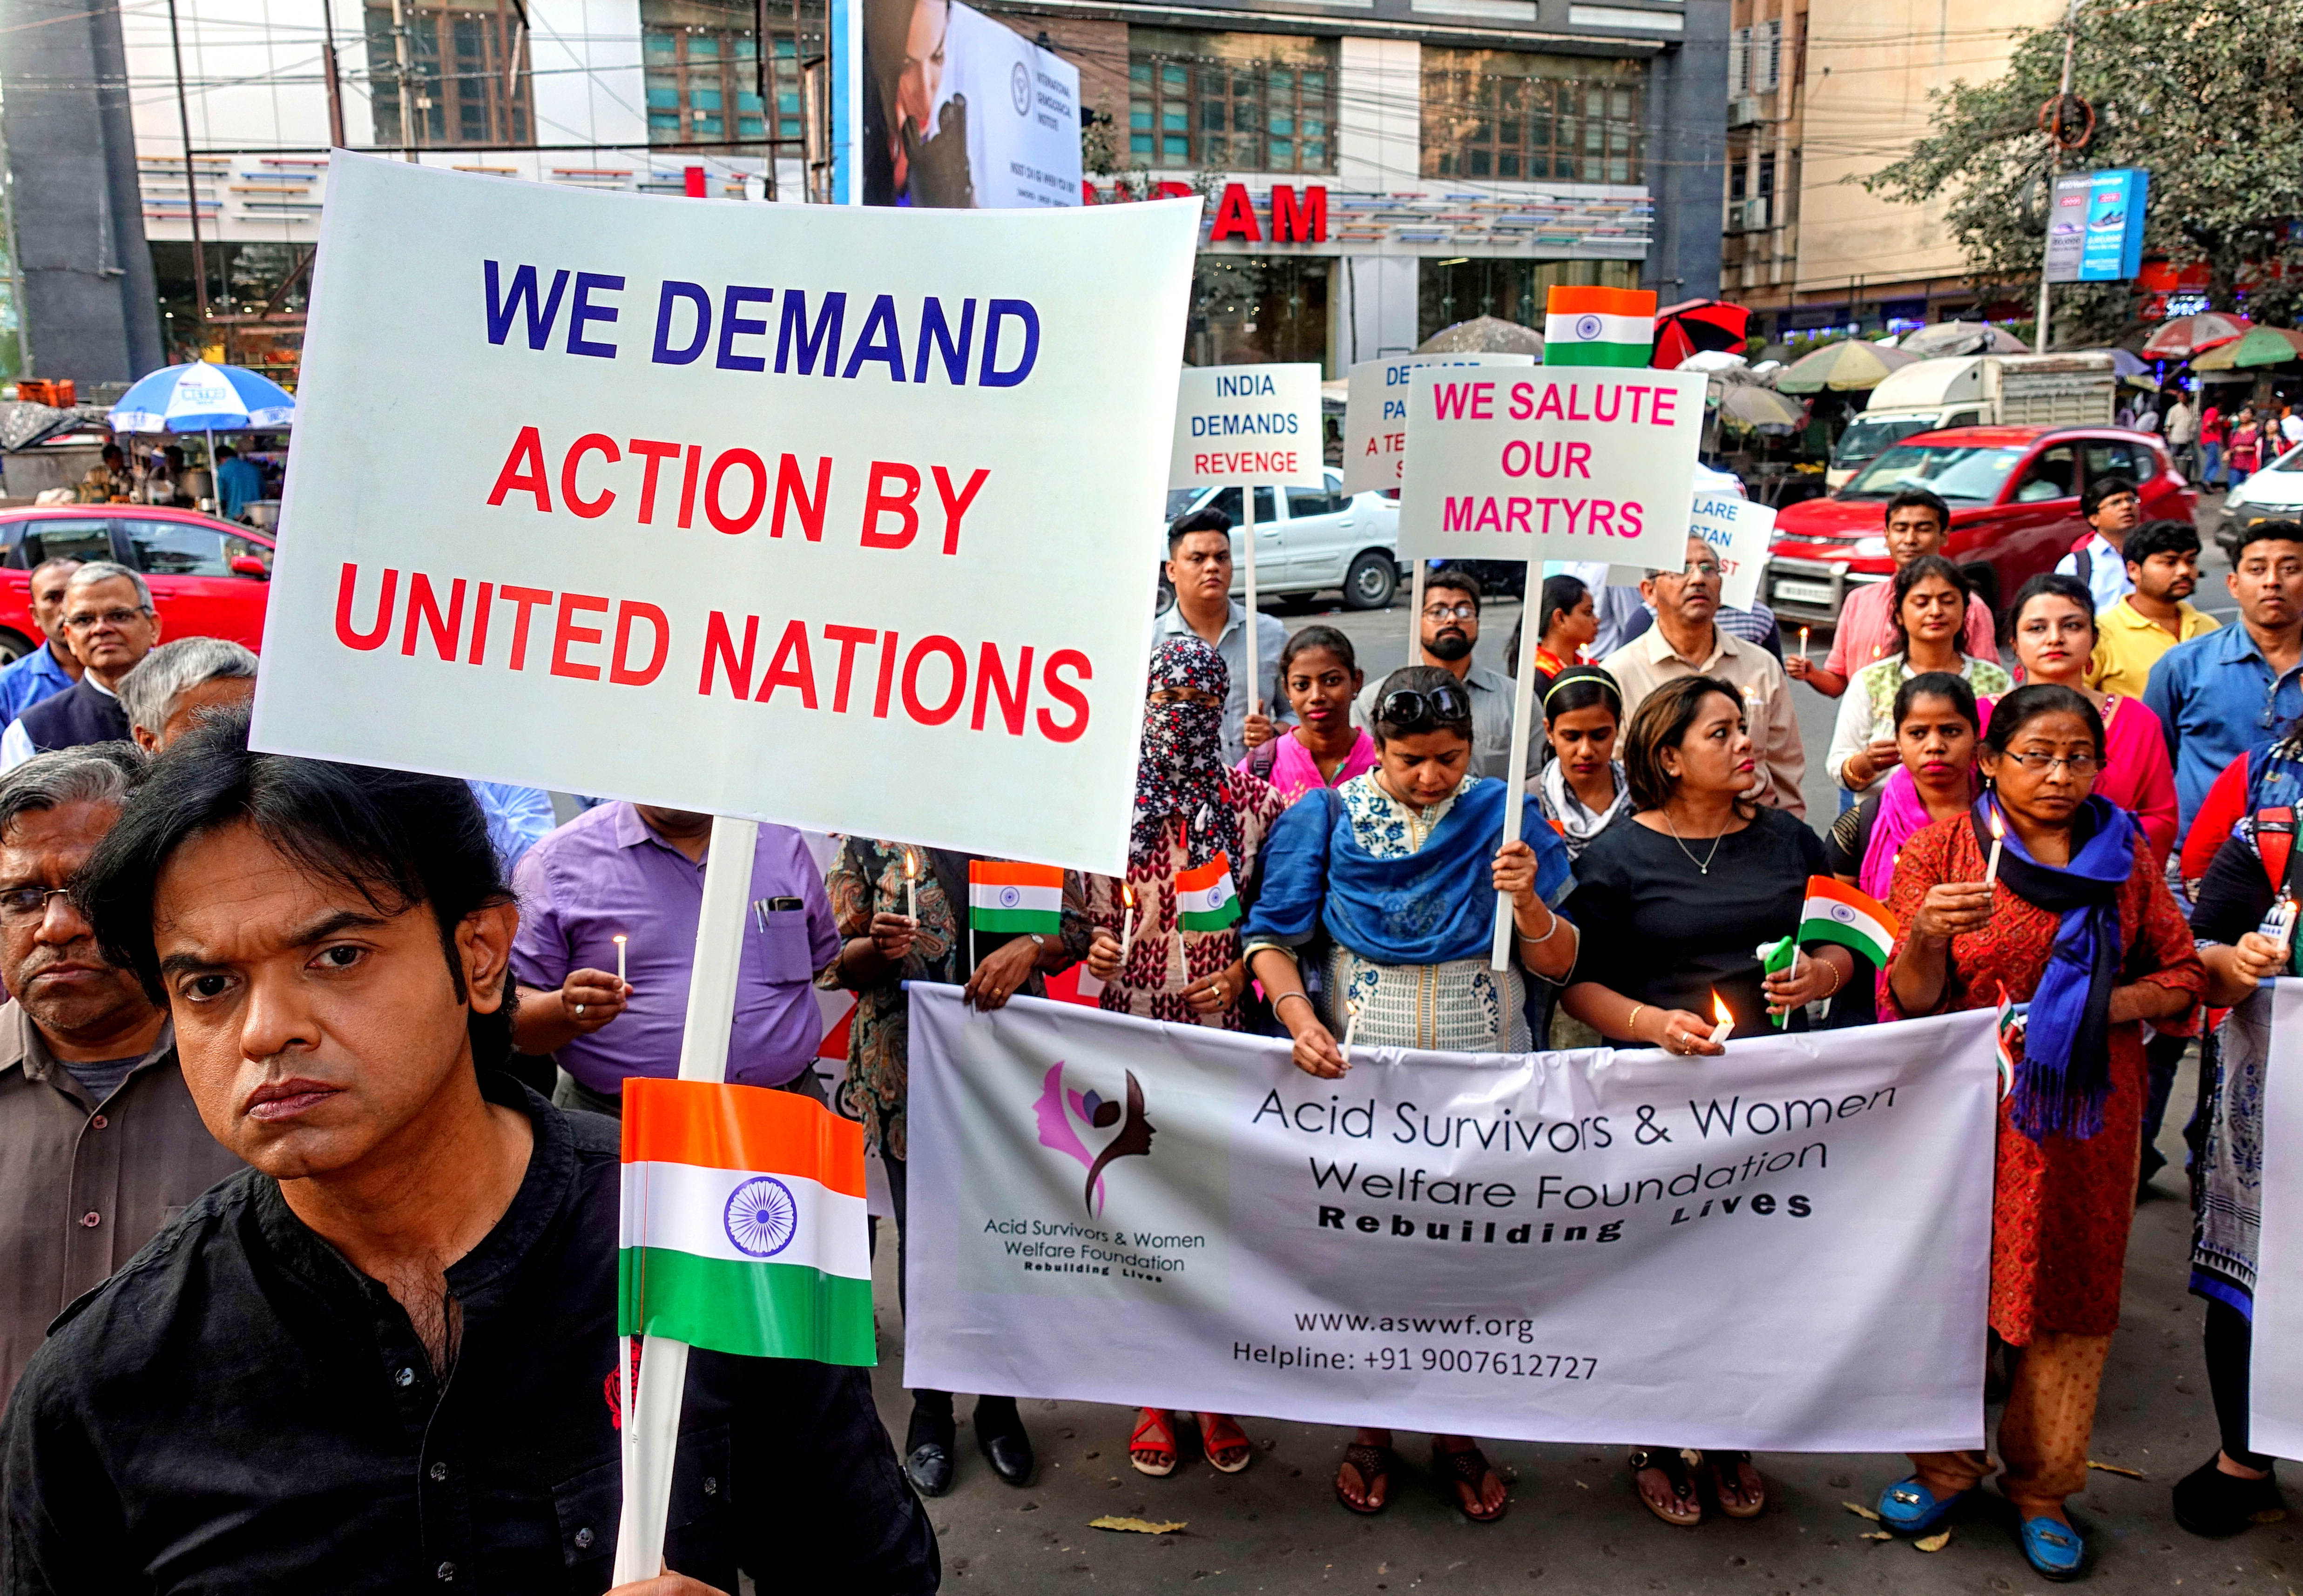 Demonstrators gathering in front of the British Council & UNICEF West Bengal Office demanding U.N. action against Pakistan and the perpetrators of the Pulwama terrorist attack on Feb. 19, 2019.